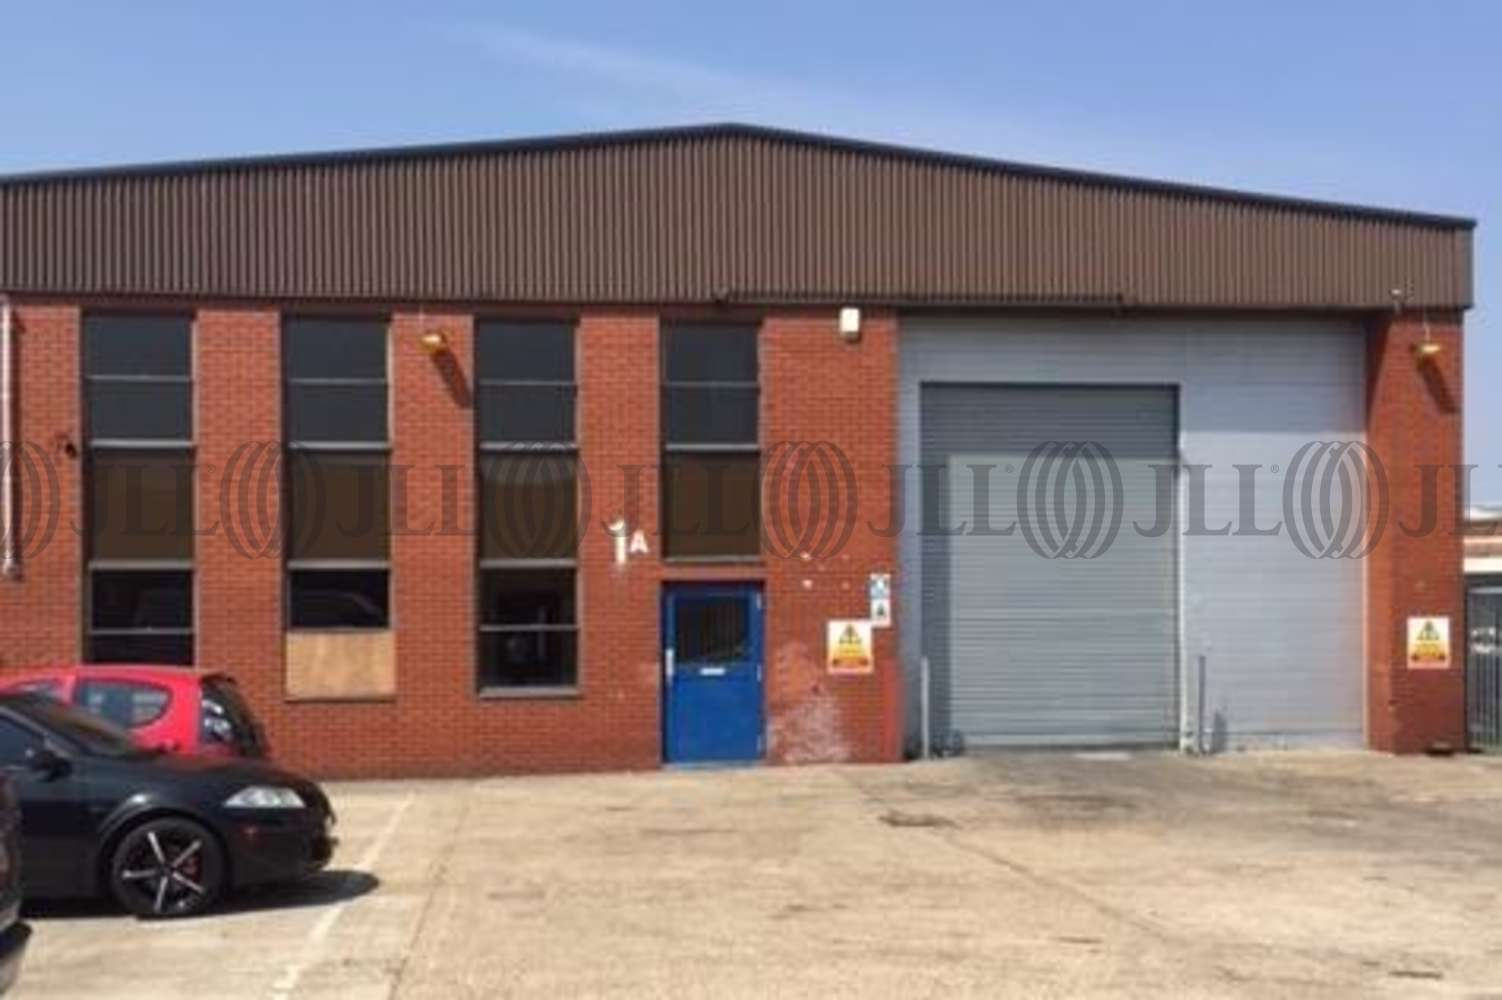 Industrial and logistics Park royal, NW10 6EX - 1A Oakwood Industrial Estate - 1